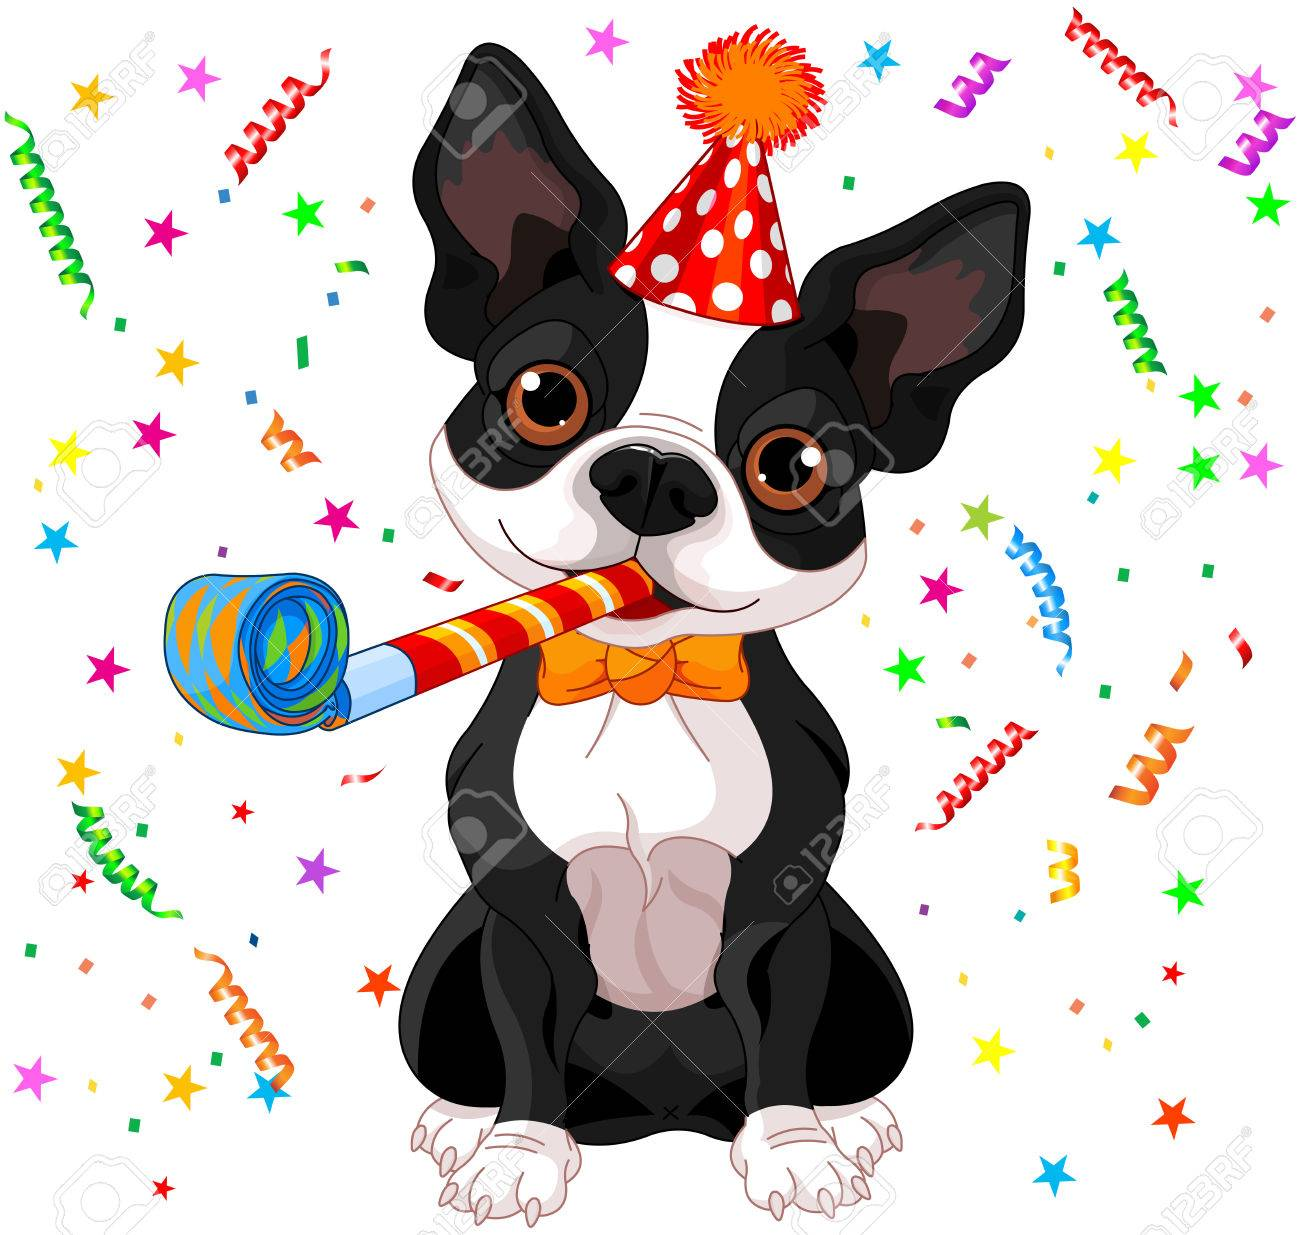 Est-ce vraiment possible d'être toujours à 100% positif? 35588778-illustration-of-cute-boston-terrier-celebrating